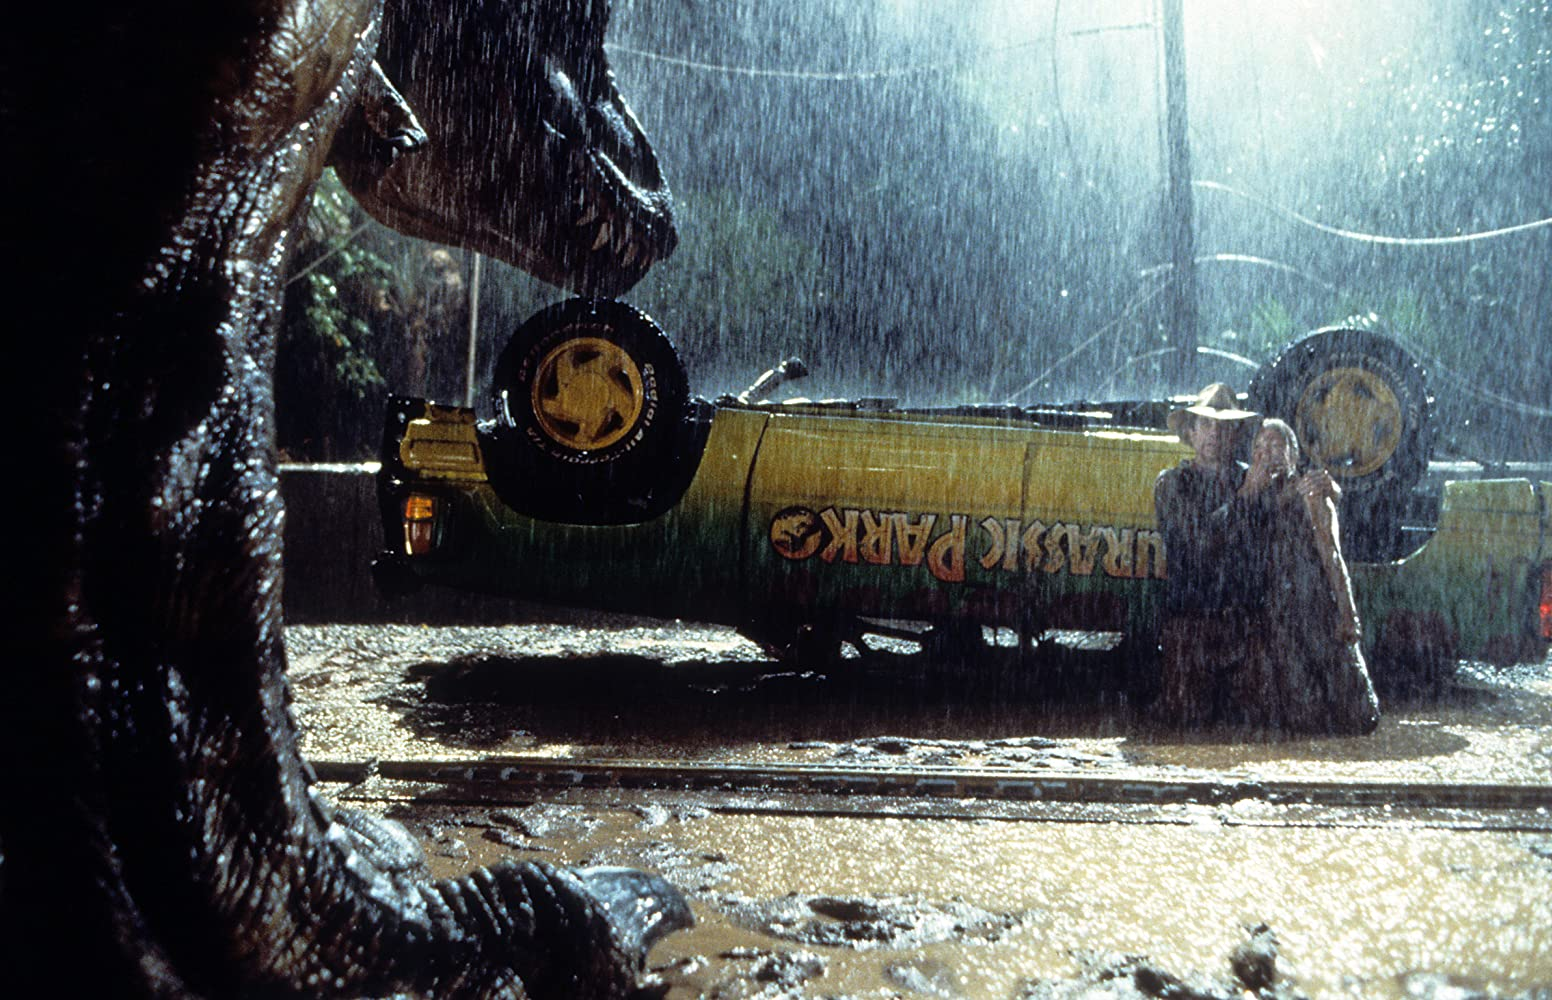 Sam Neill and Ariana Richards in Jurassic Park (1993)